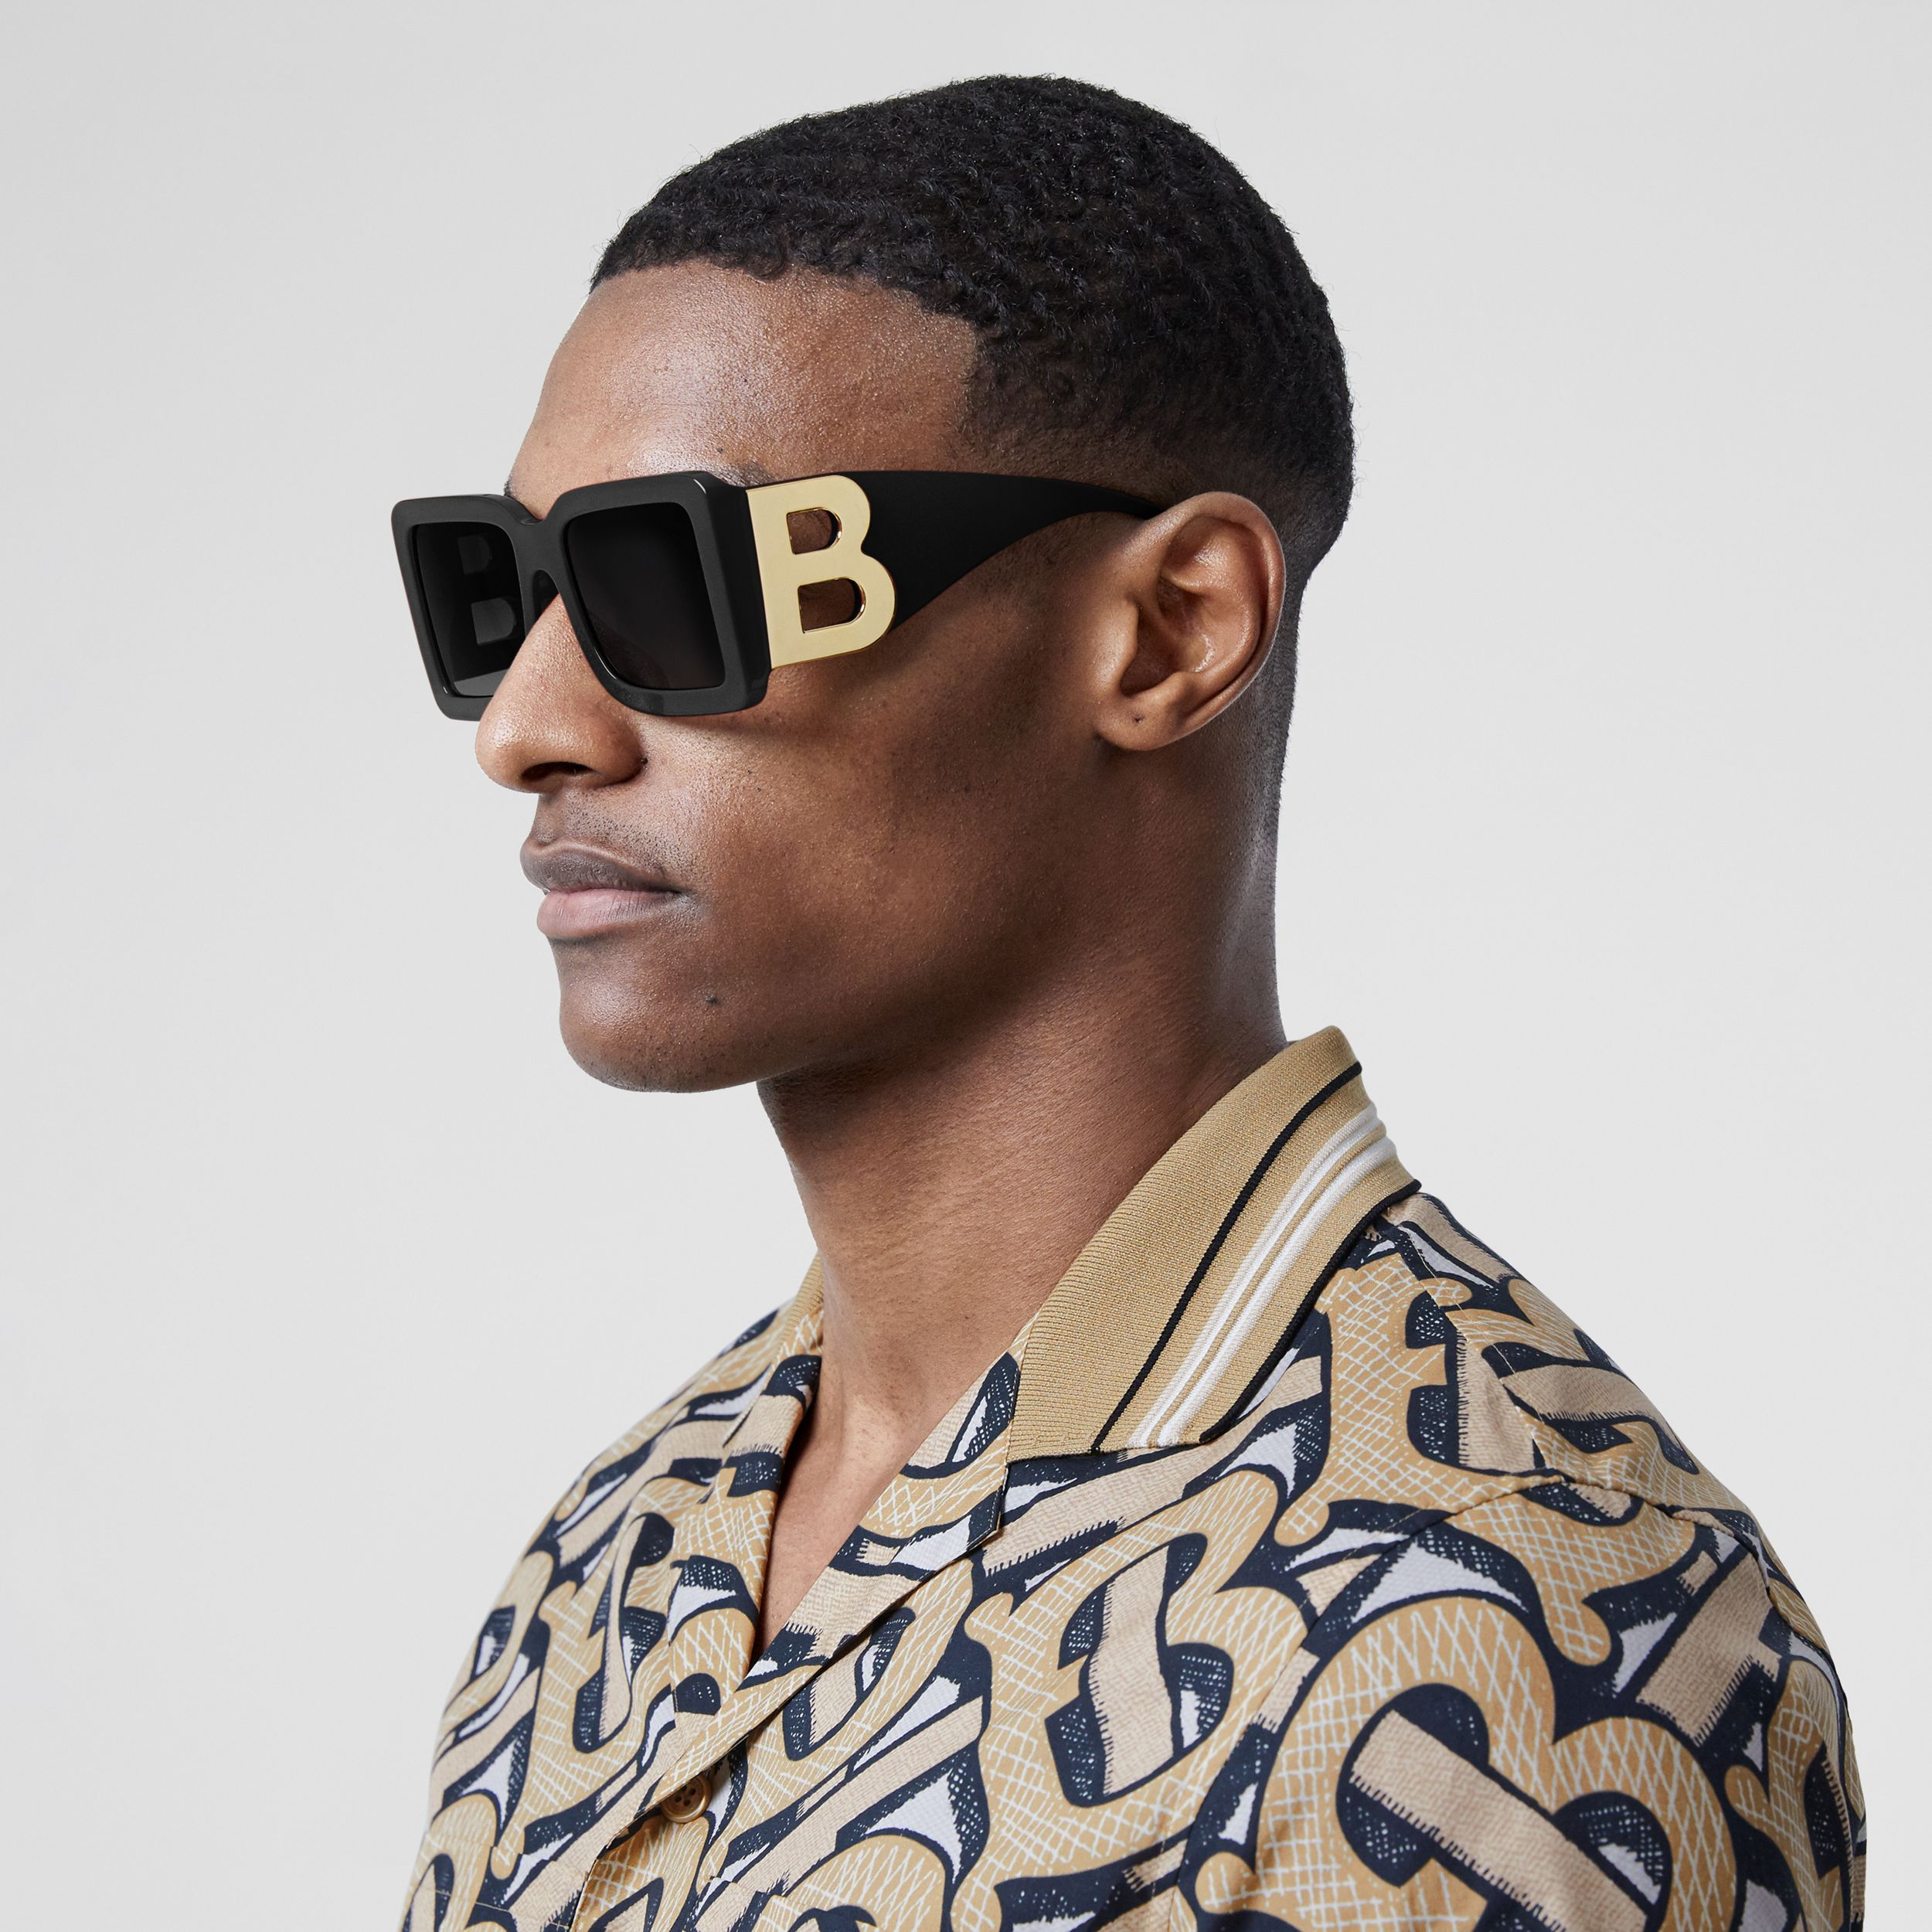 B Motif Square Frame Sunglasses in Black | Burberry United States - 4